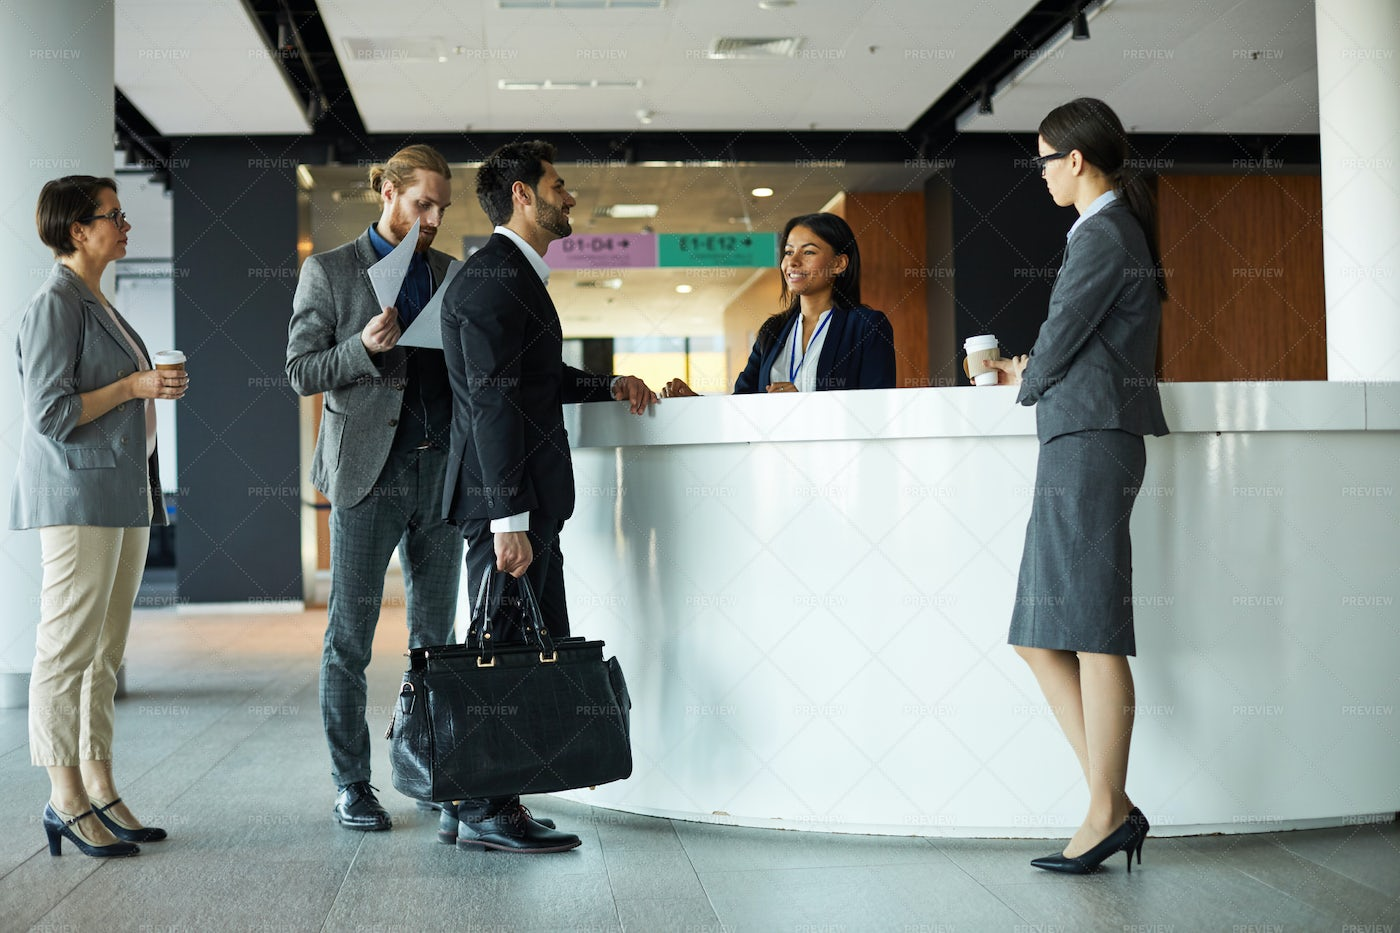 Businessman Checking In To Hotel: Stock Photos